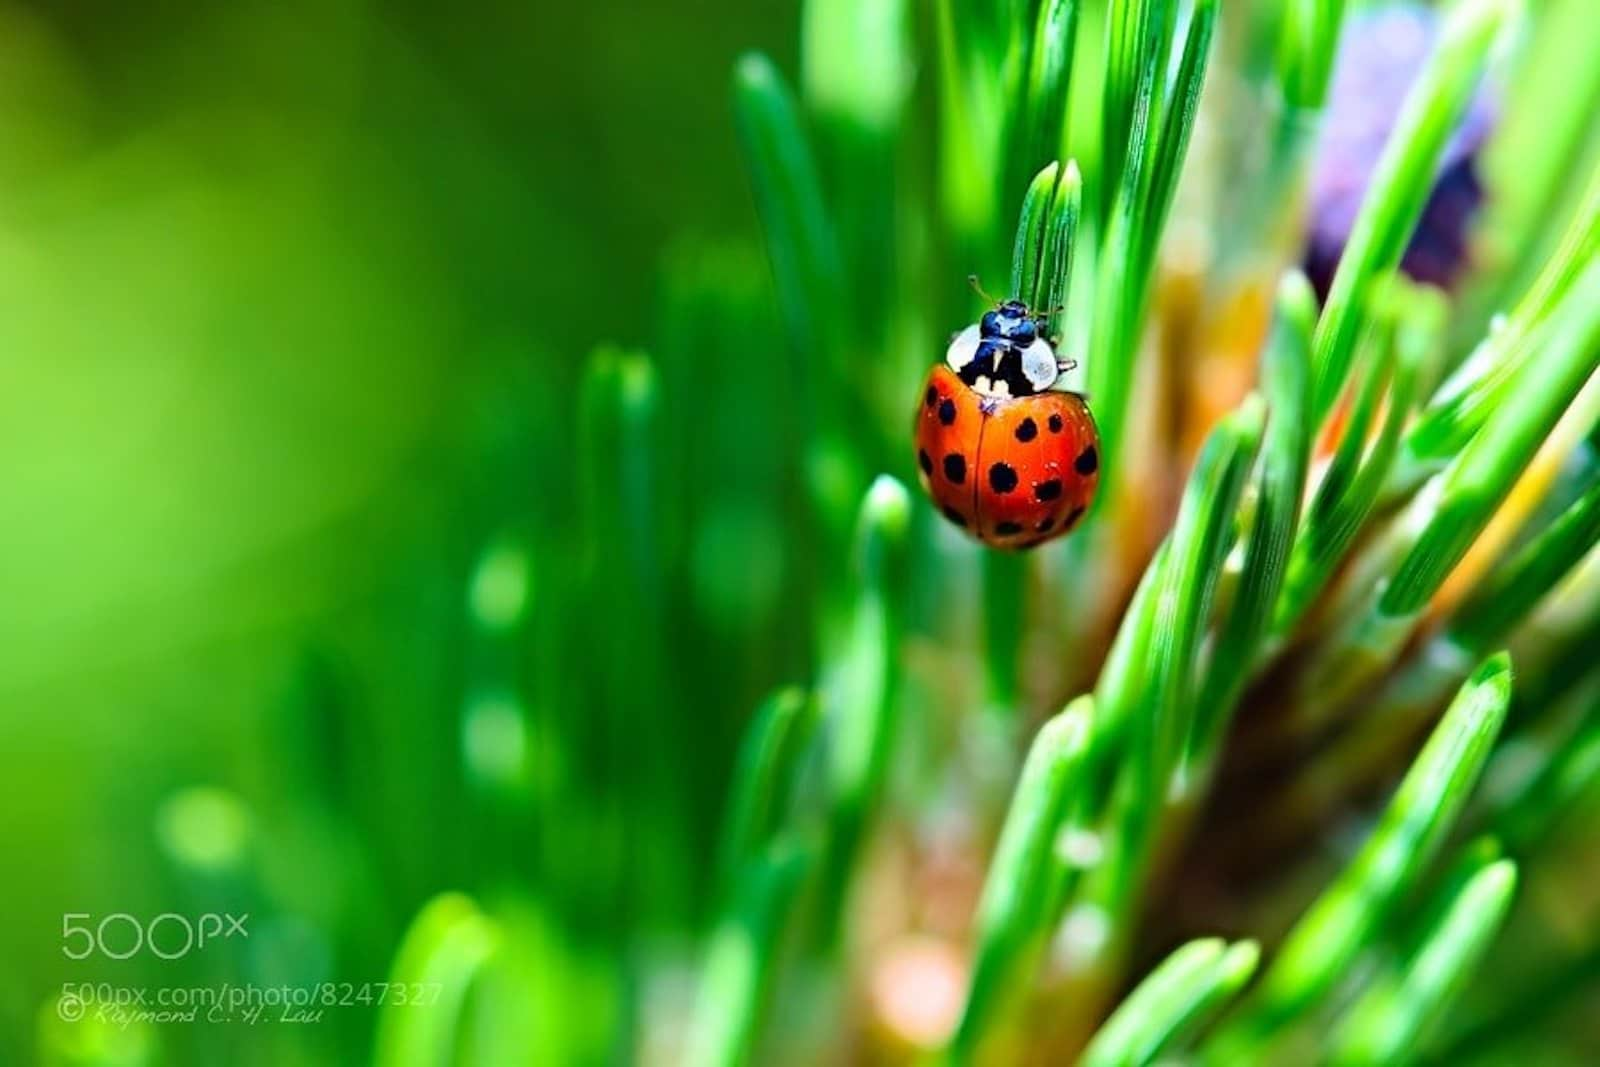 What is Depth of Field - Shallow Depth of Field Example - Image